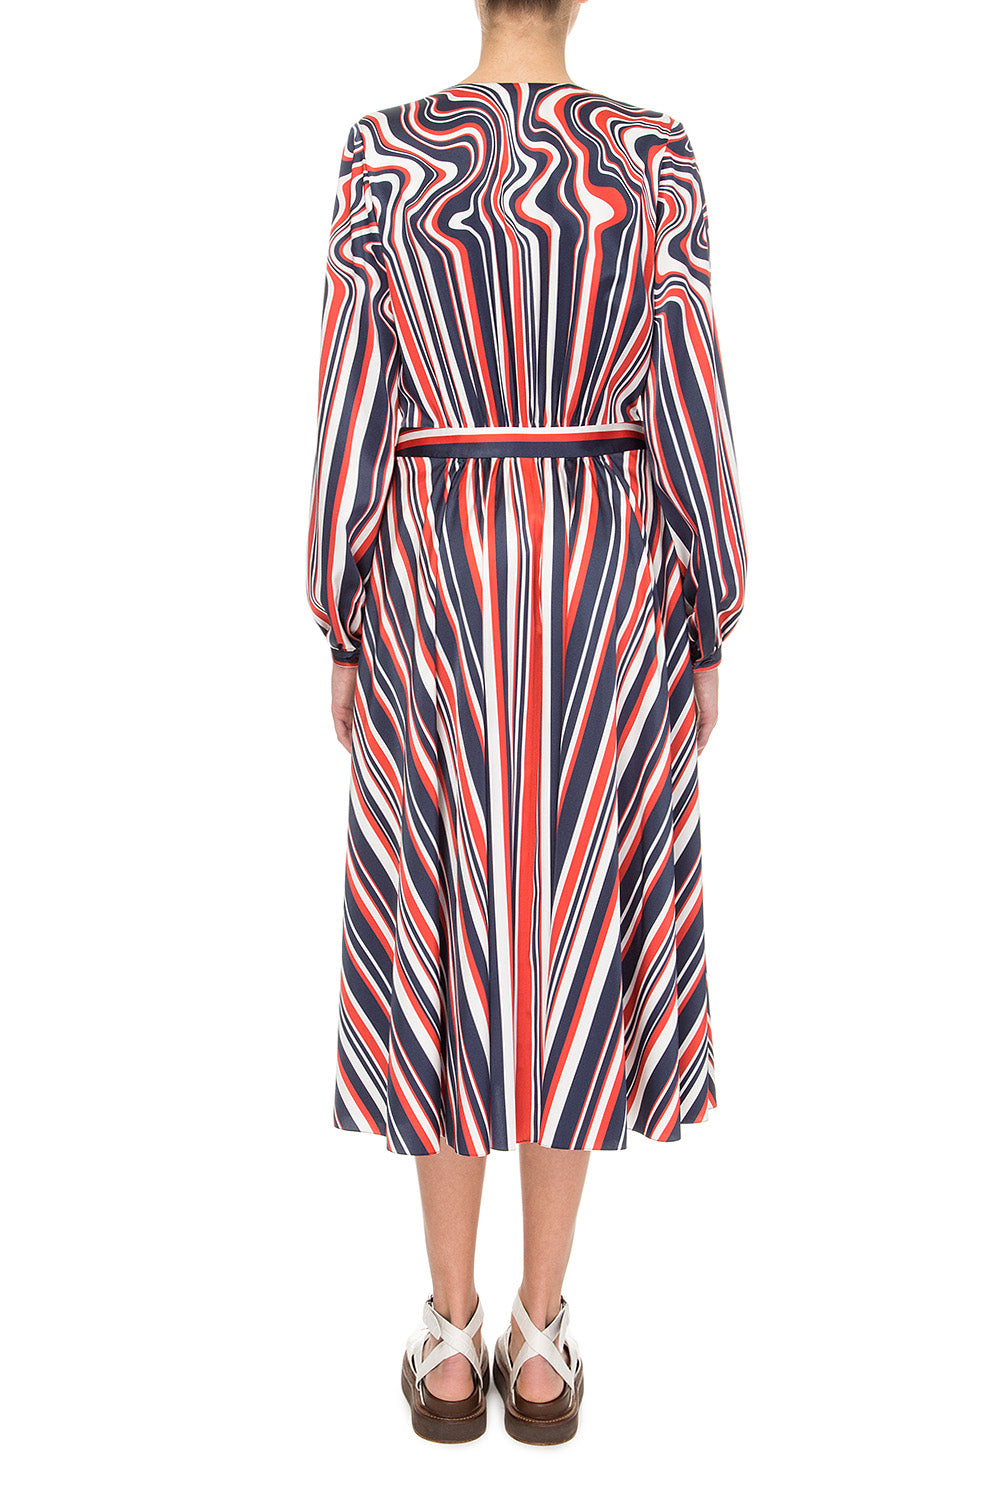 Printed striped dress